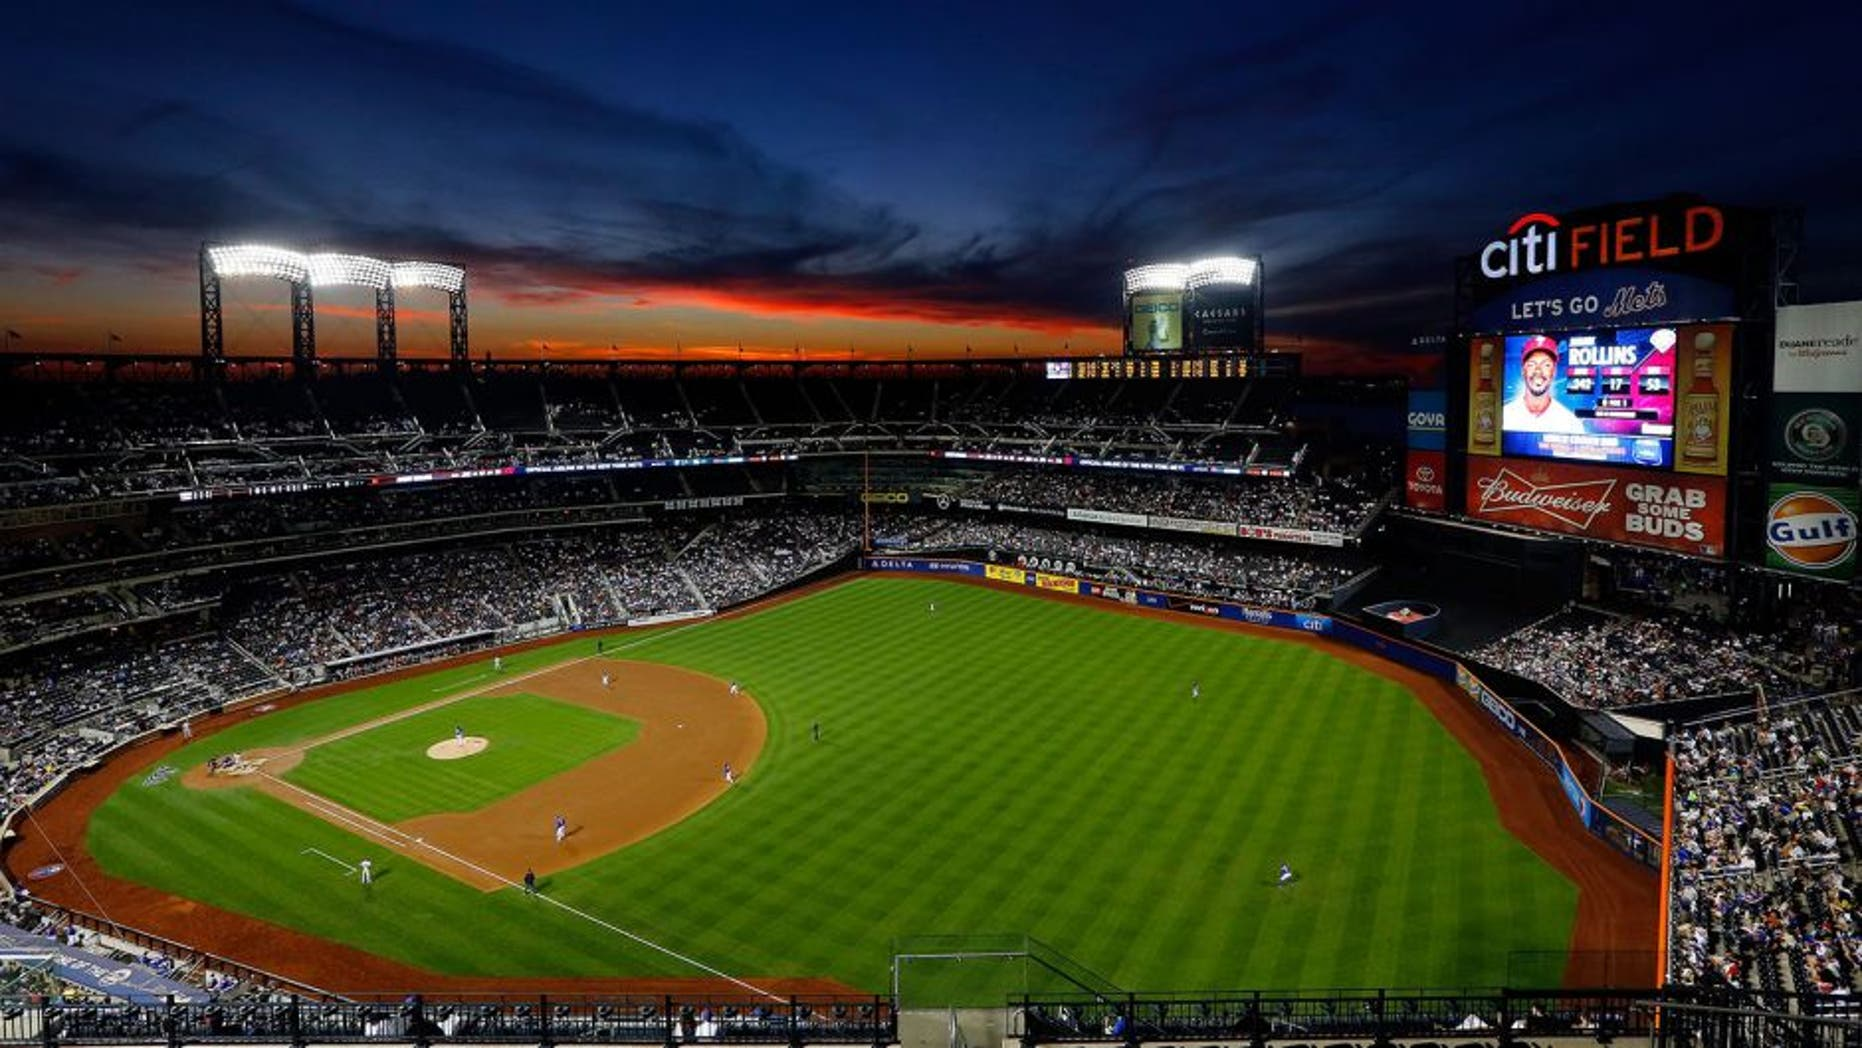 NEW YORK, NY - AUGUST 29: A general view as the sun sets during a game between the New York Mets and the Philadelphia Phillies in the third inning at Citi Field on August 29, 2014 in the Flushing neighborhood of the Queens borough of New York City. (Photo by Jim McIsaac/Getty Images)